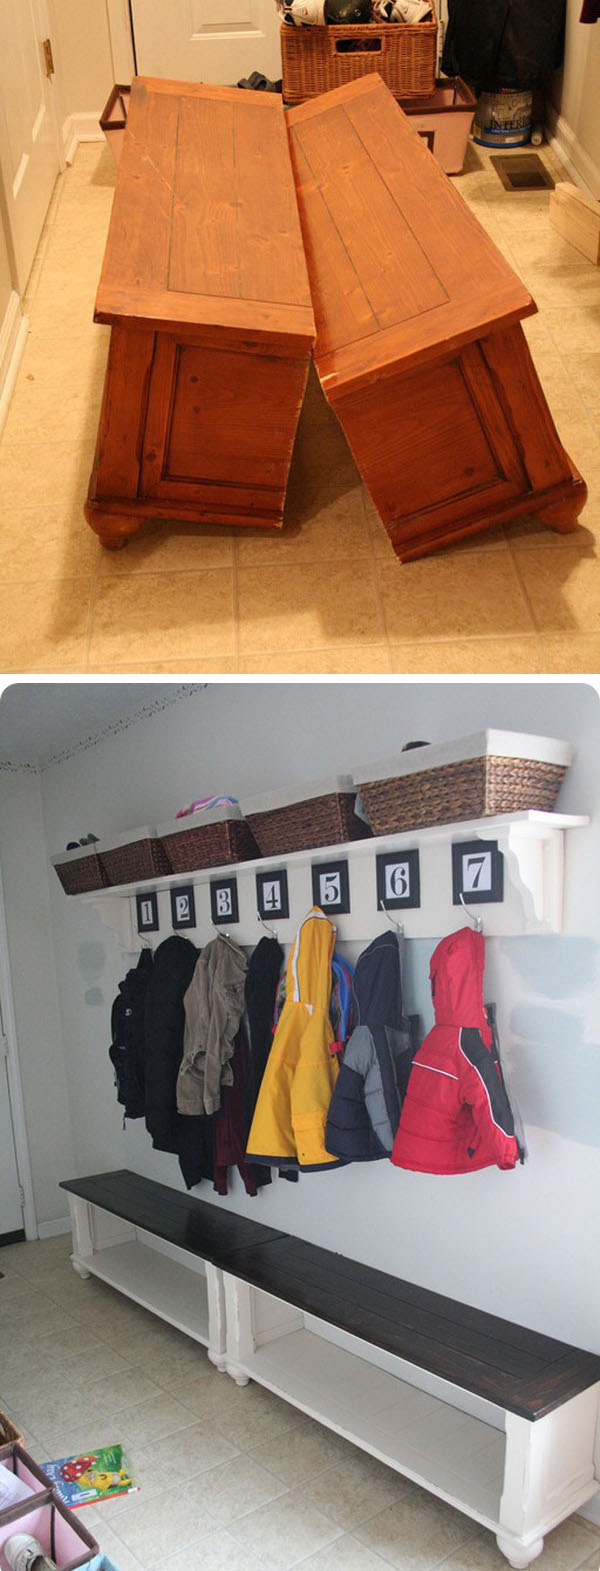 1 Turn an Old Coffee Table to a Mudroom Bench